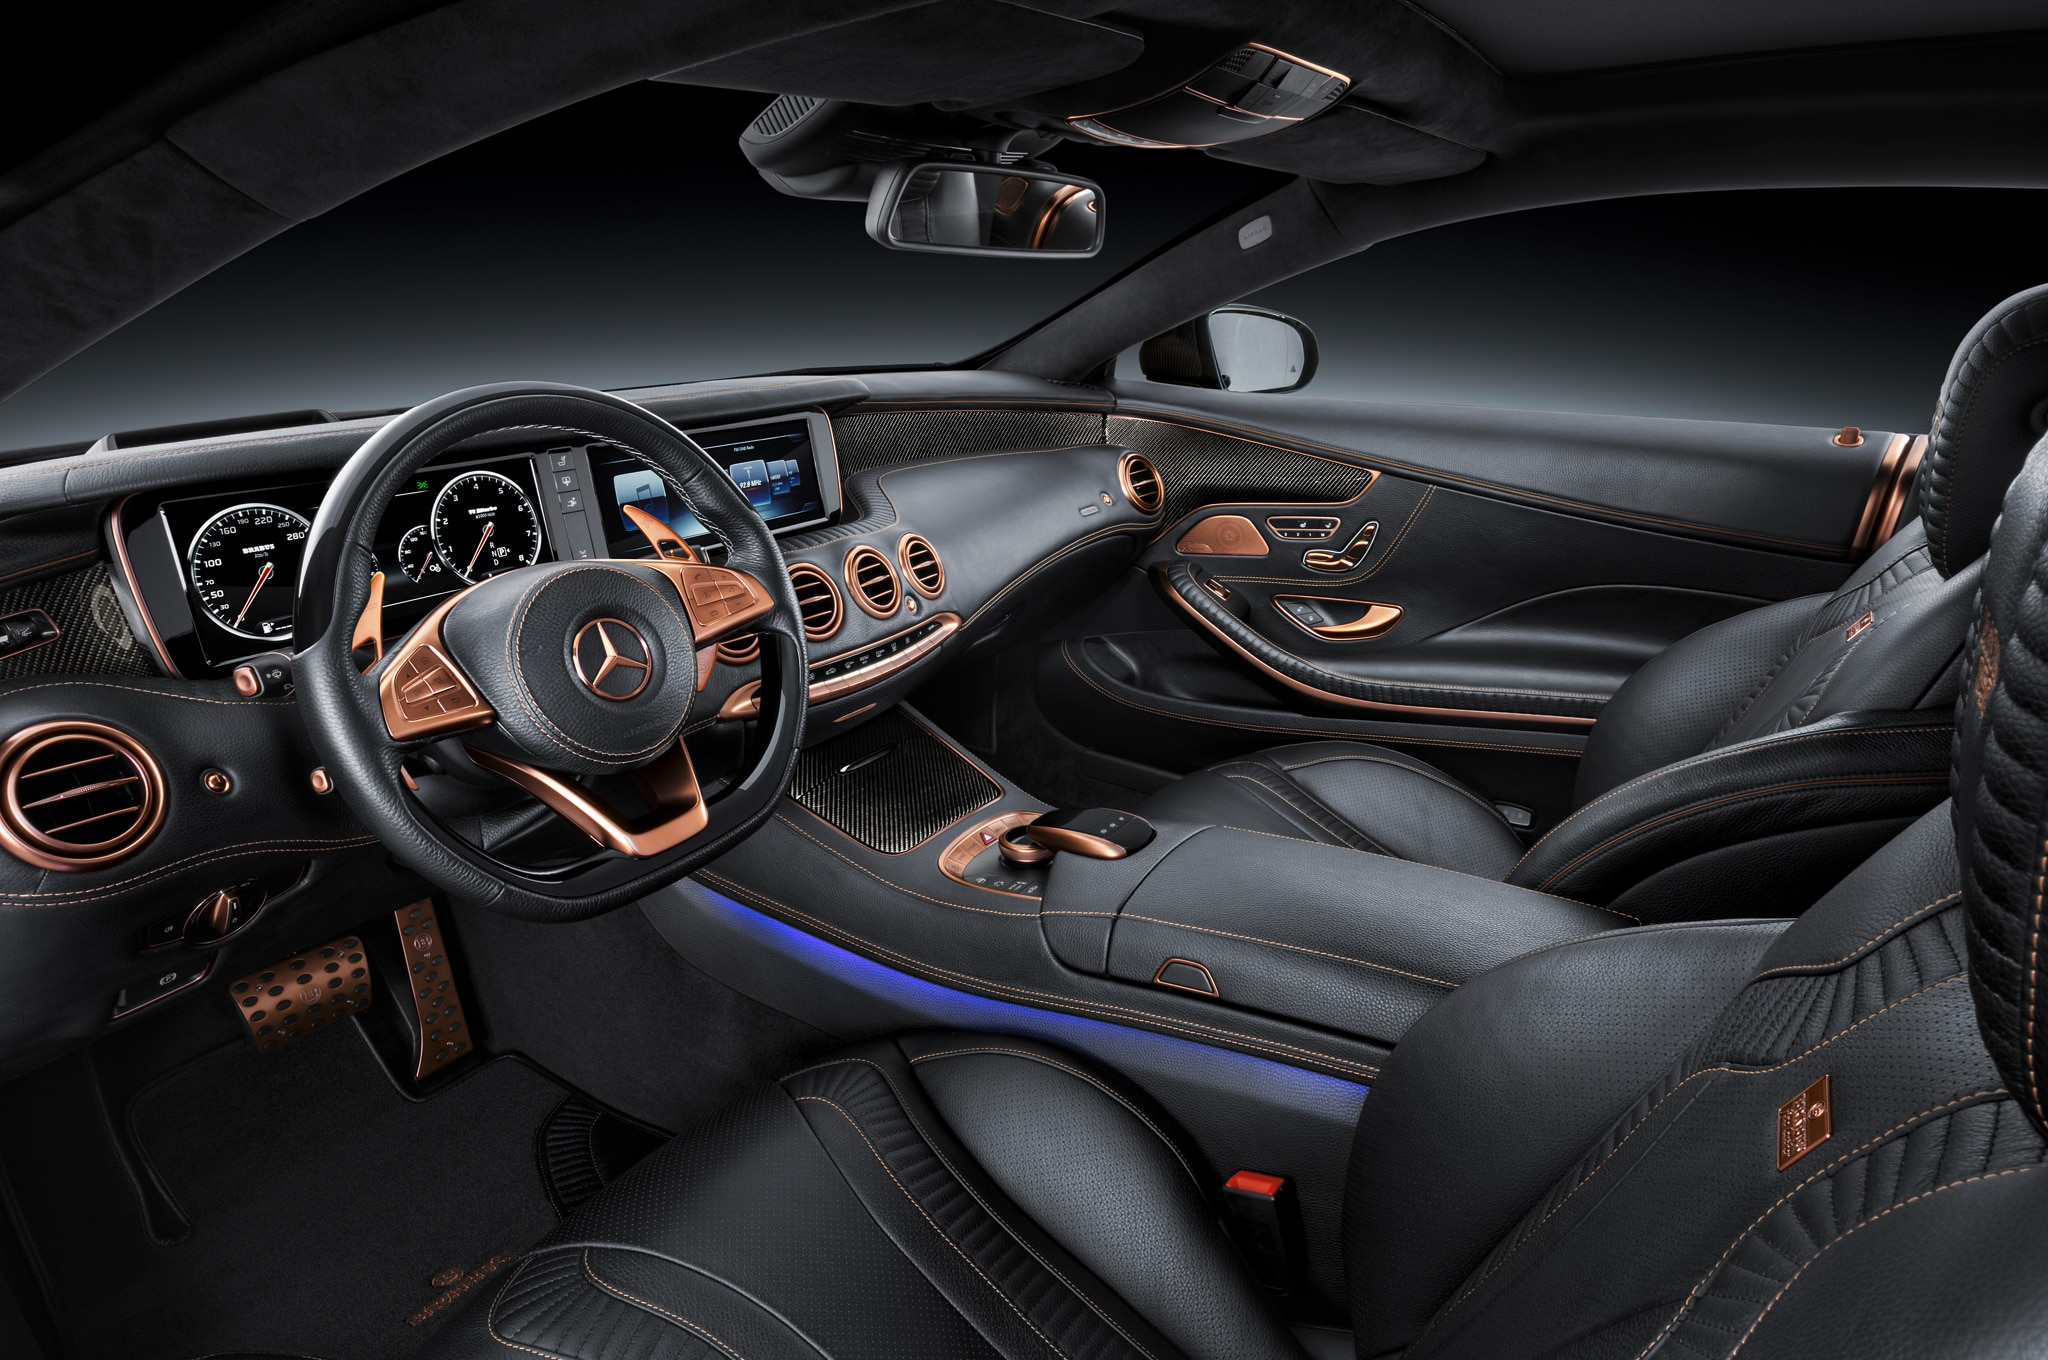 brabus gives the mercedes benz s63 amg coupe 850 hp. Black Bedroom Furniture Sets. Home Design Ideas